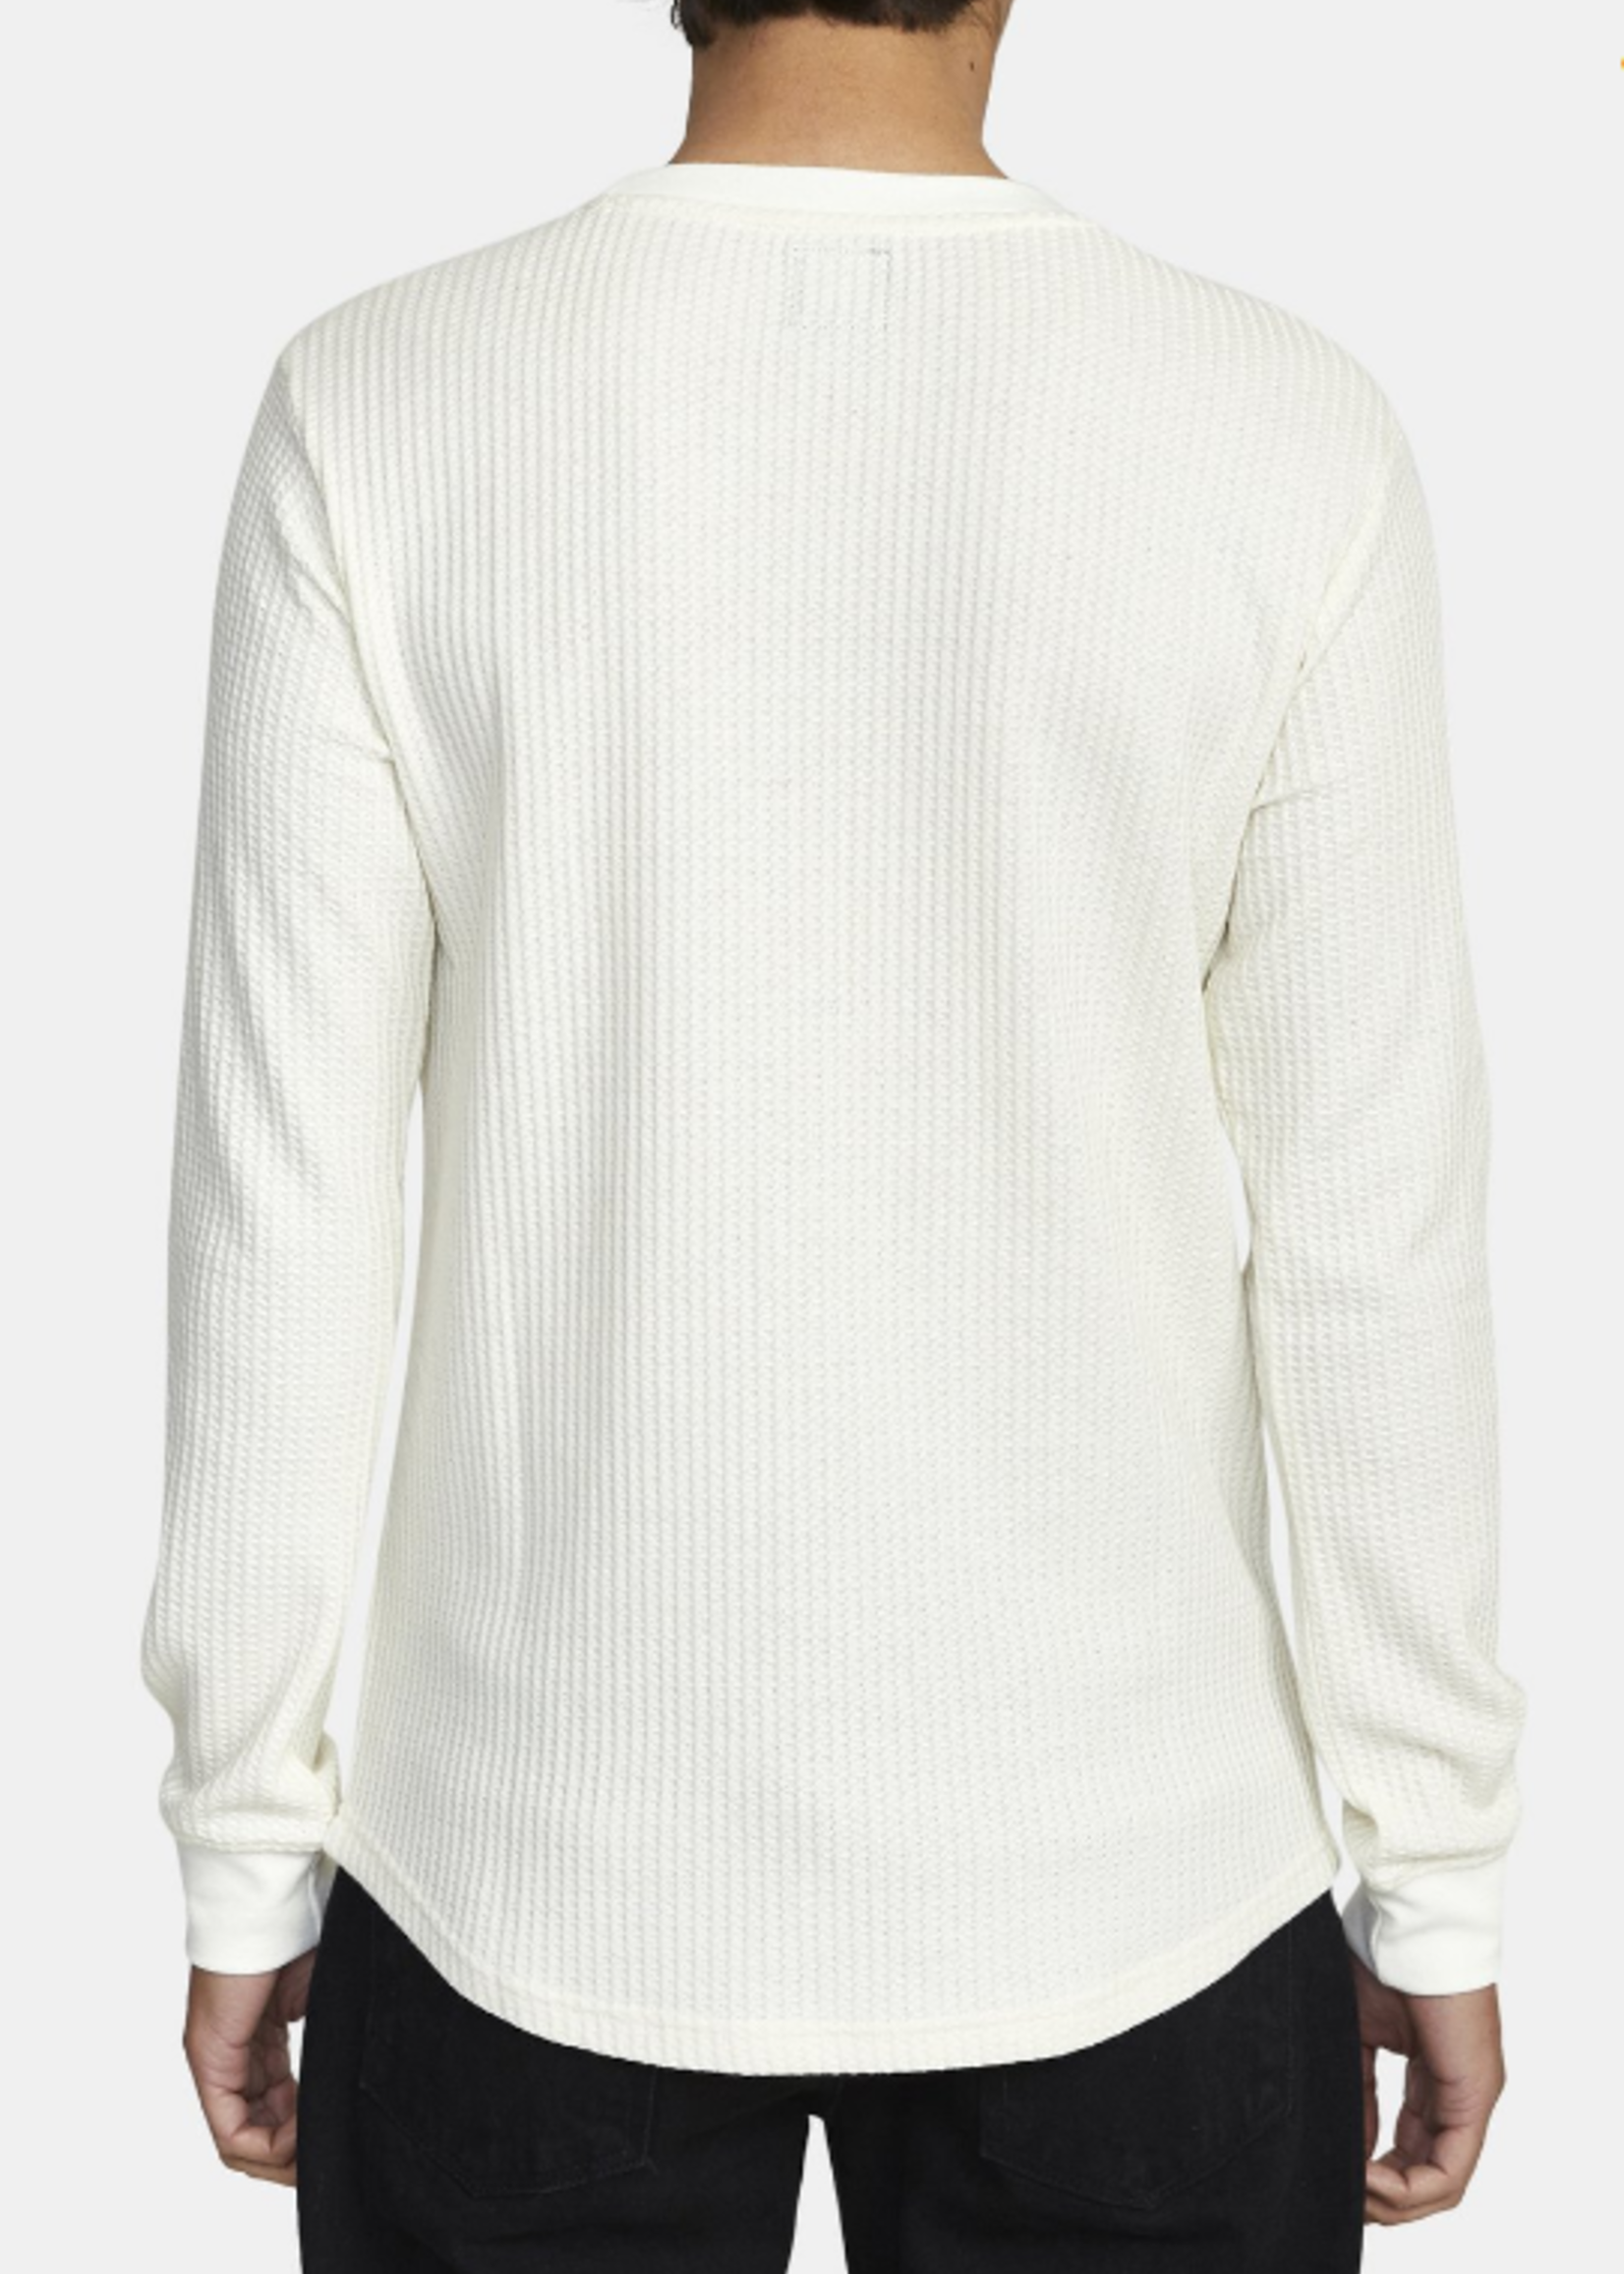 RVCA Day Shift Thermal - Antique White